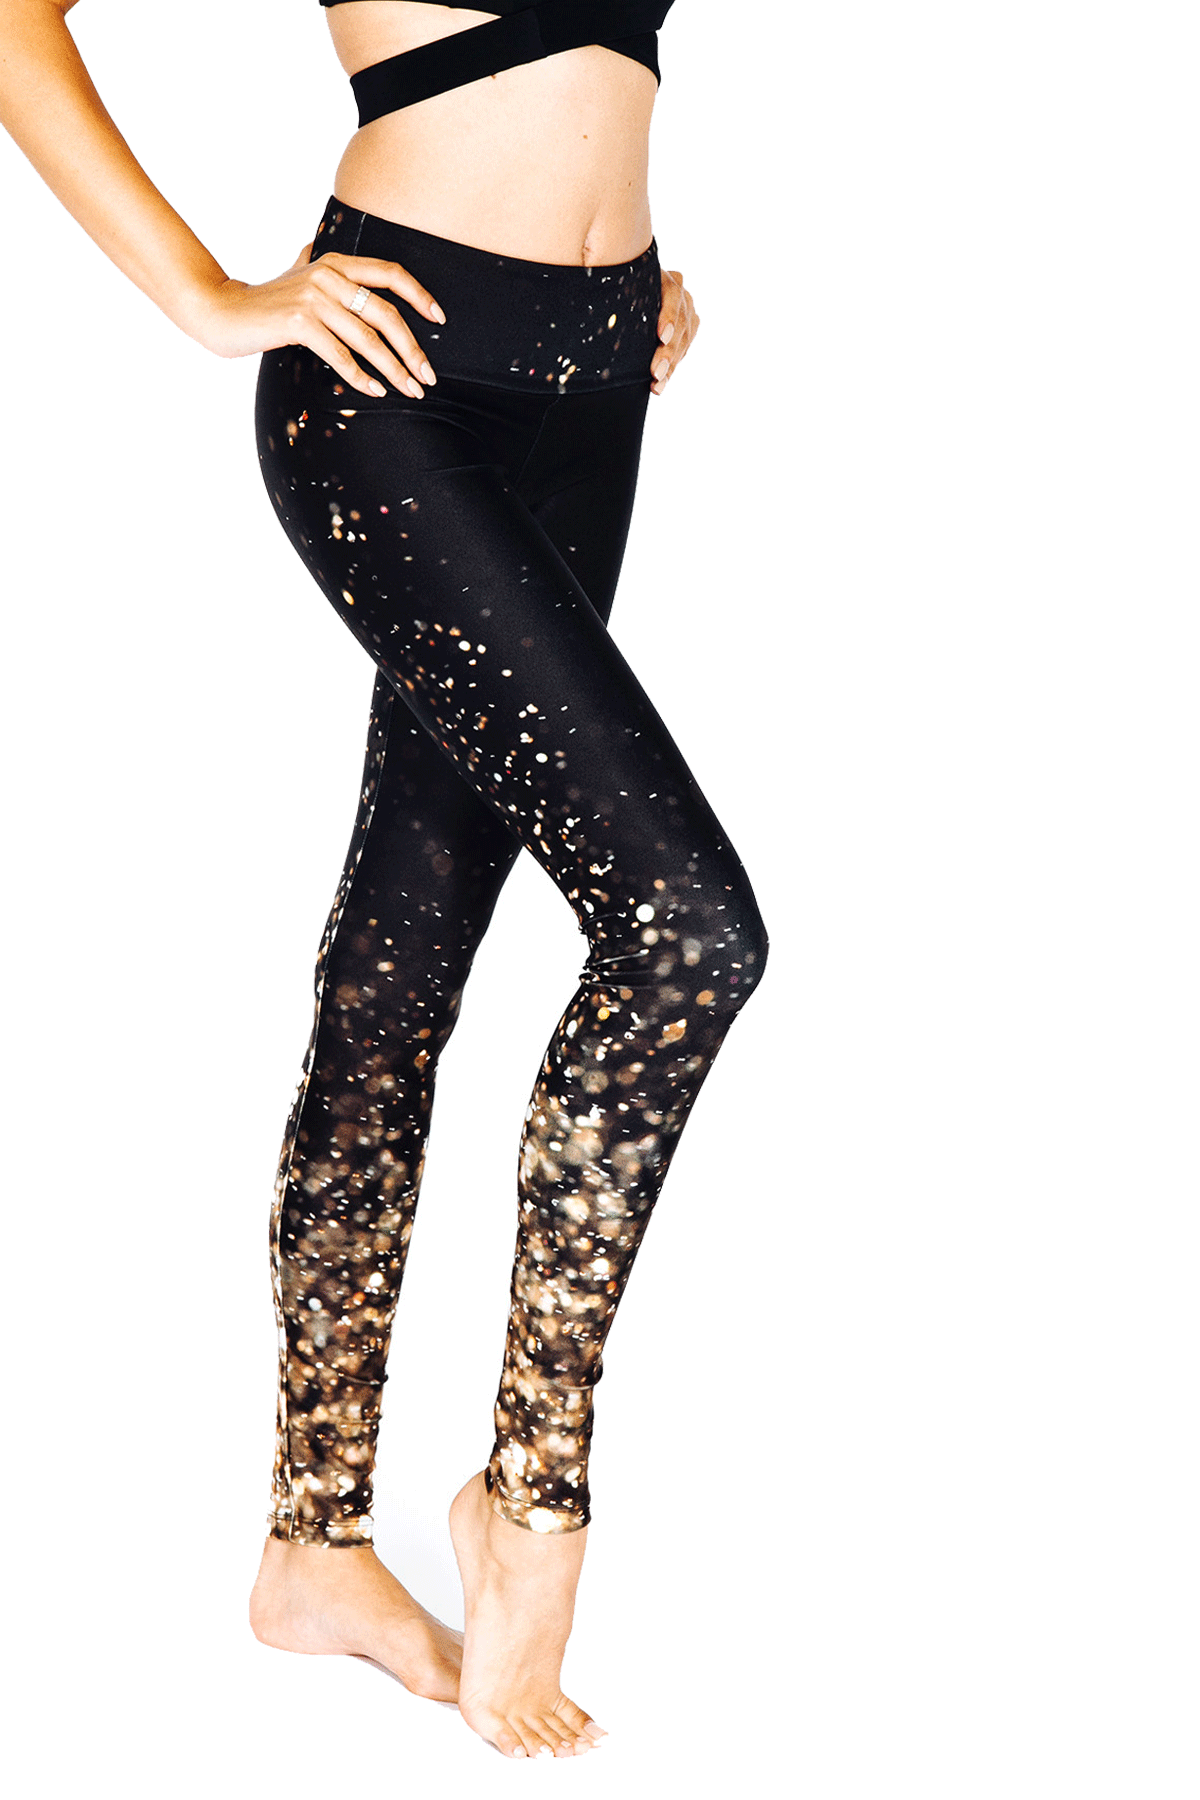 Gold Lights Legging - Goldsheep | INFLOWSTYLE